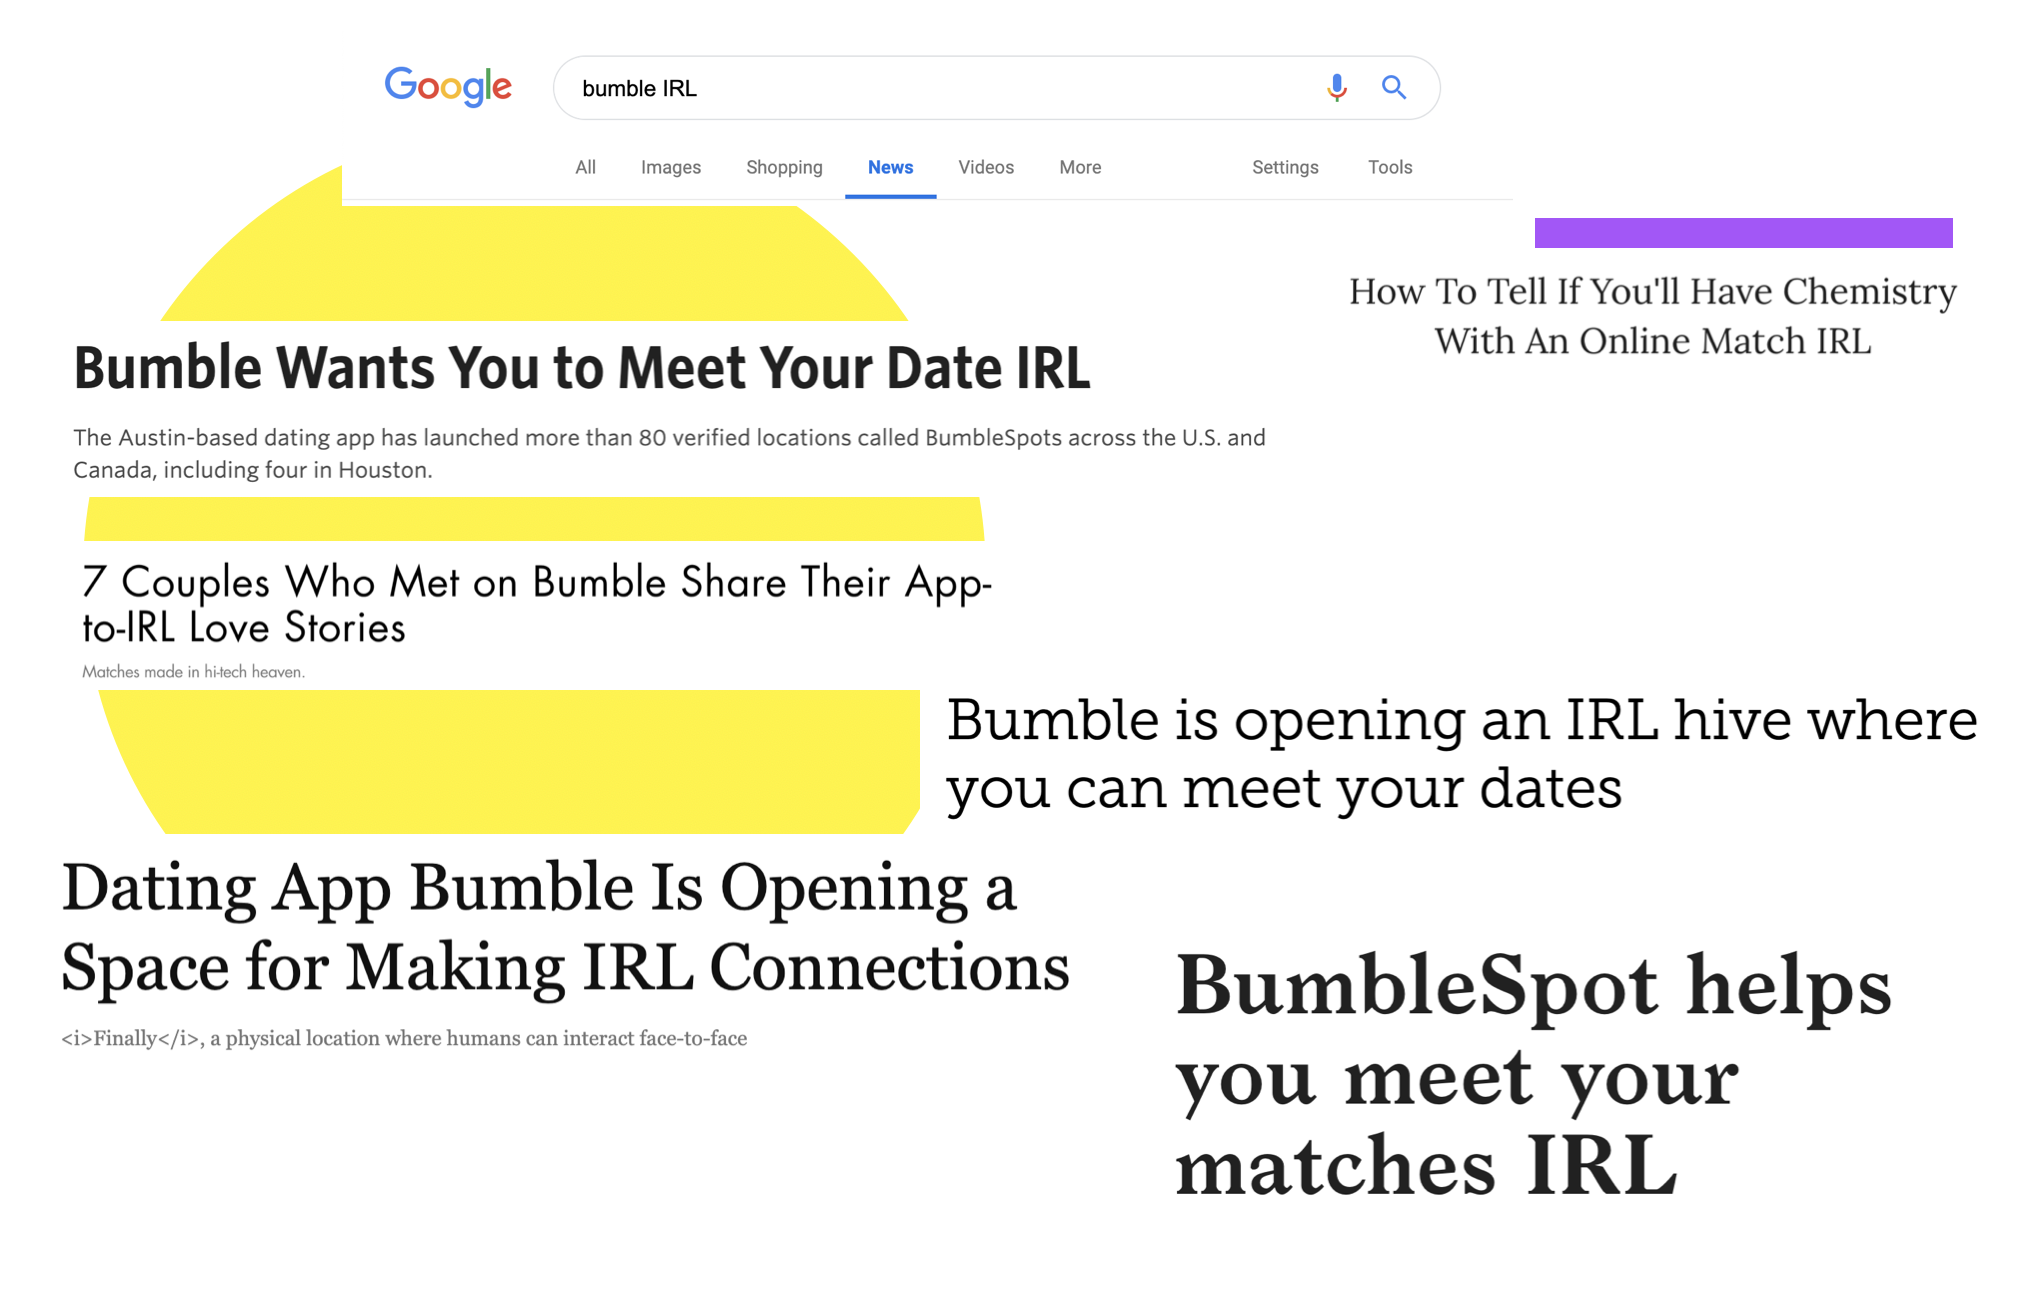 Designing for the Bumble App IRL - The Startup - Medium